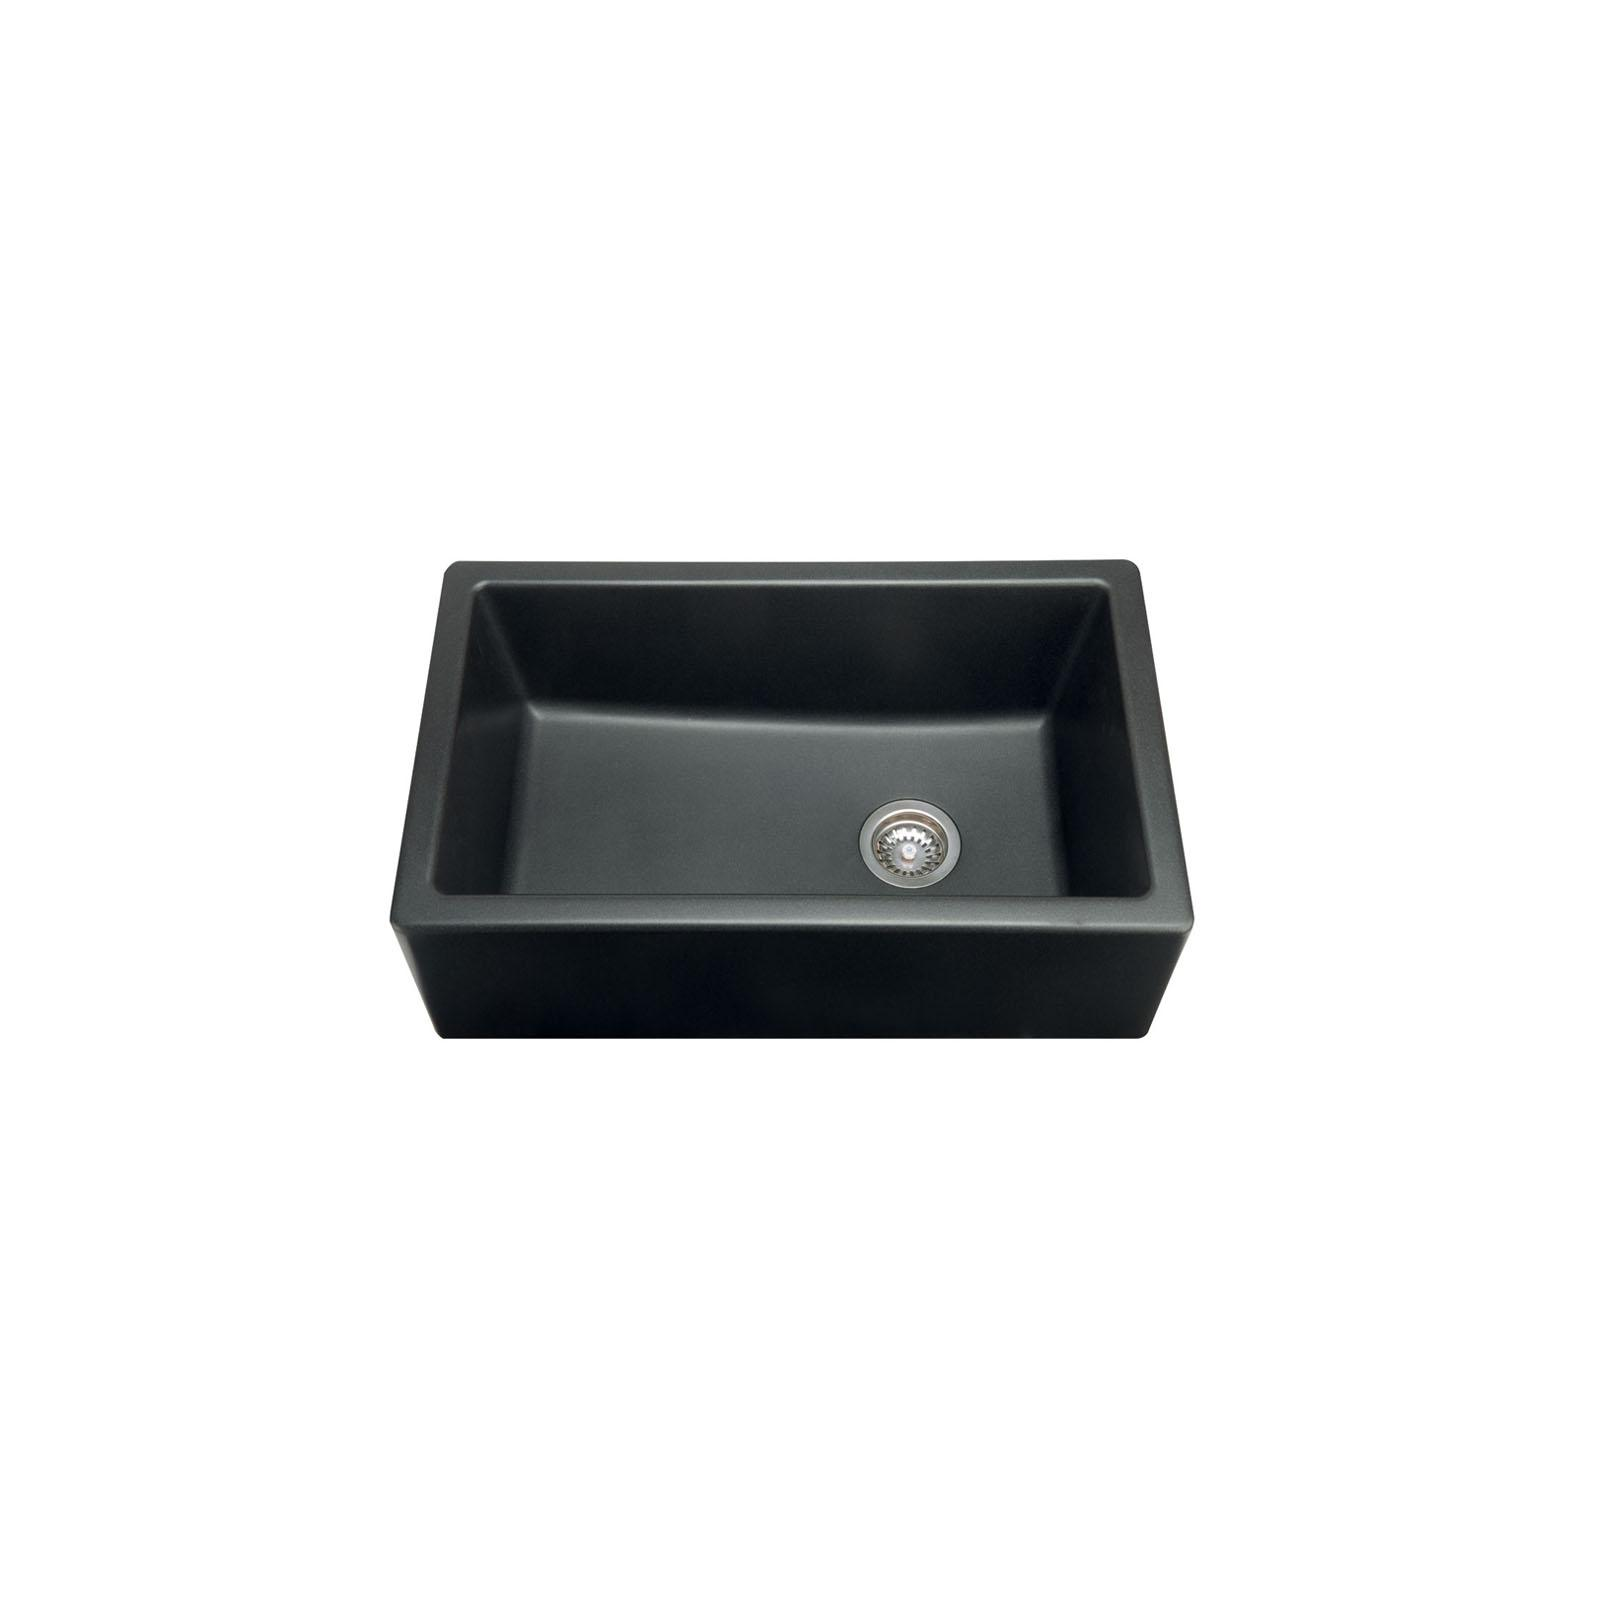 High-quality sink Philippe II granit black - one bowl